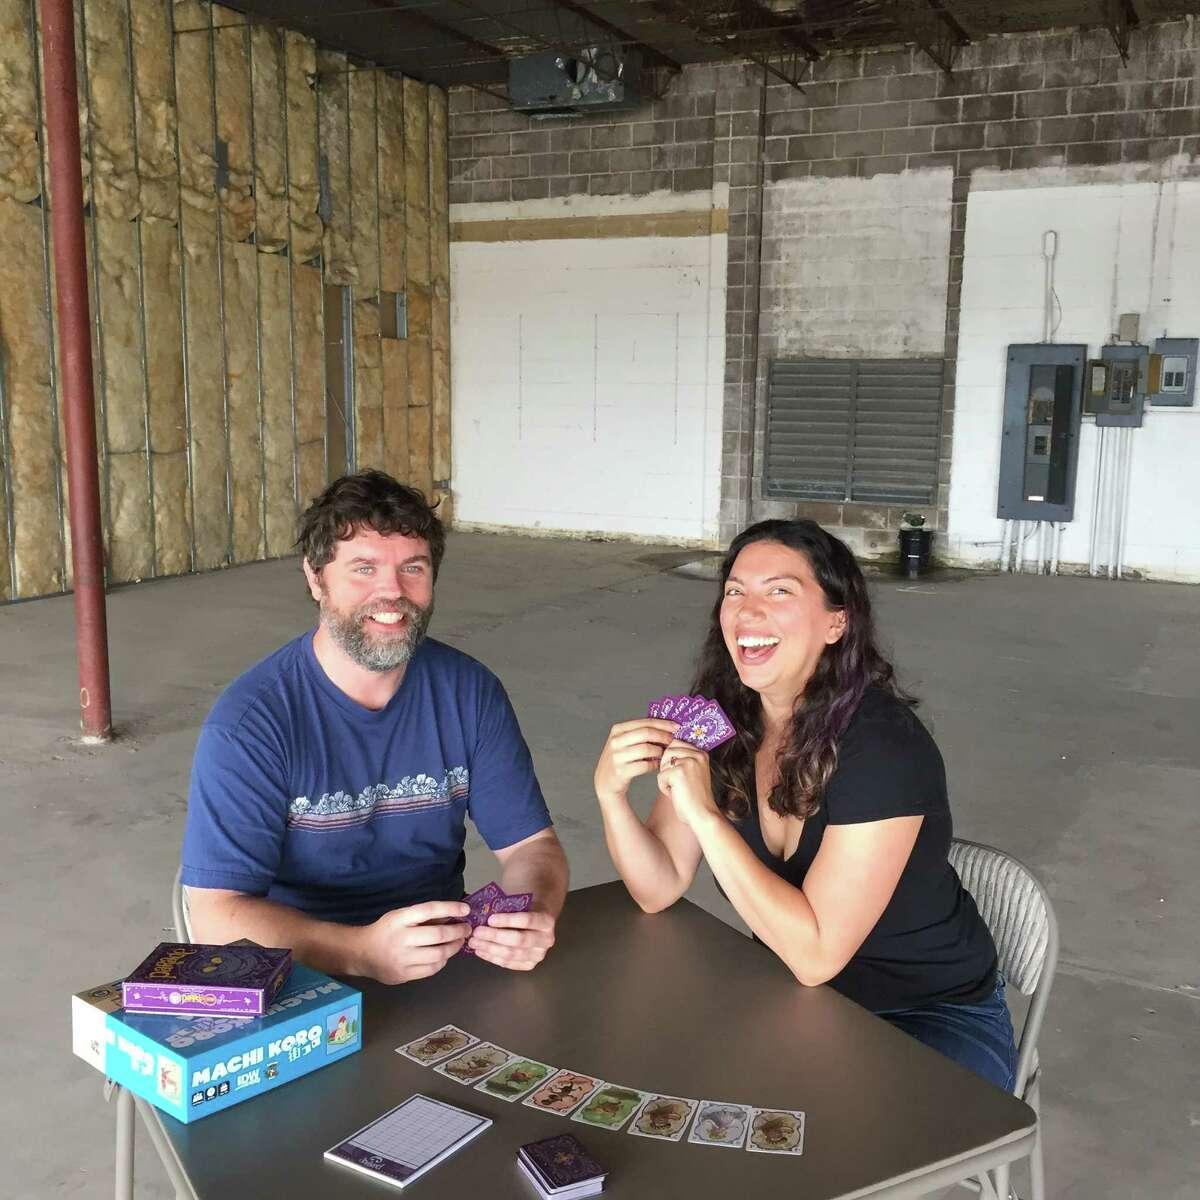 Tea + Victory is a board game cafe under construction at 2030 E. TC Jester. It is billed at Houston's first board game cafe for those with a passion for board games. It will serve food, beer, wine, and a coffee and tea program. It also will feature more than 500 board games. The project is led by husband and wife Jason Bush and Vanessa Briceno.